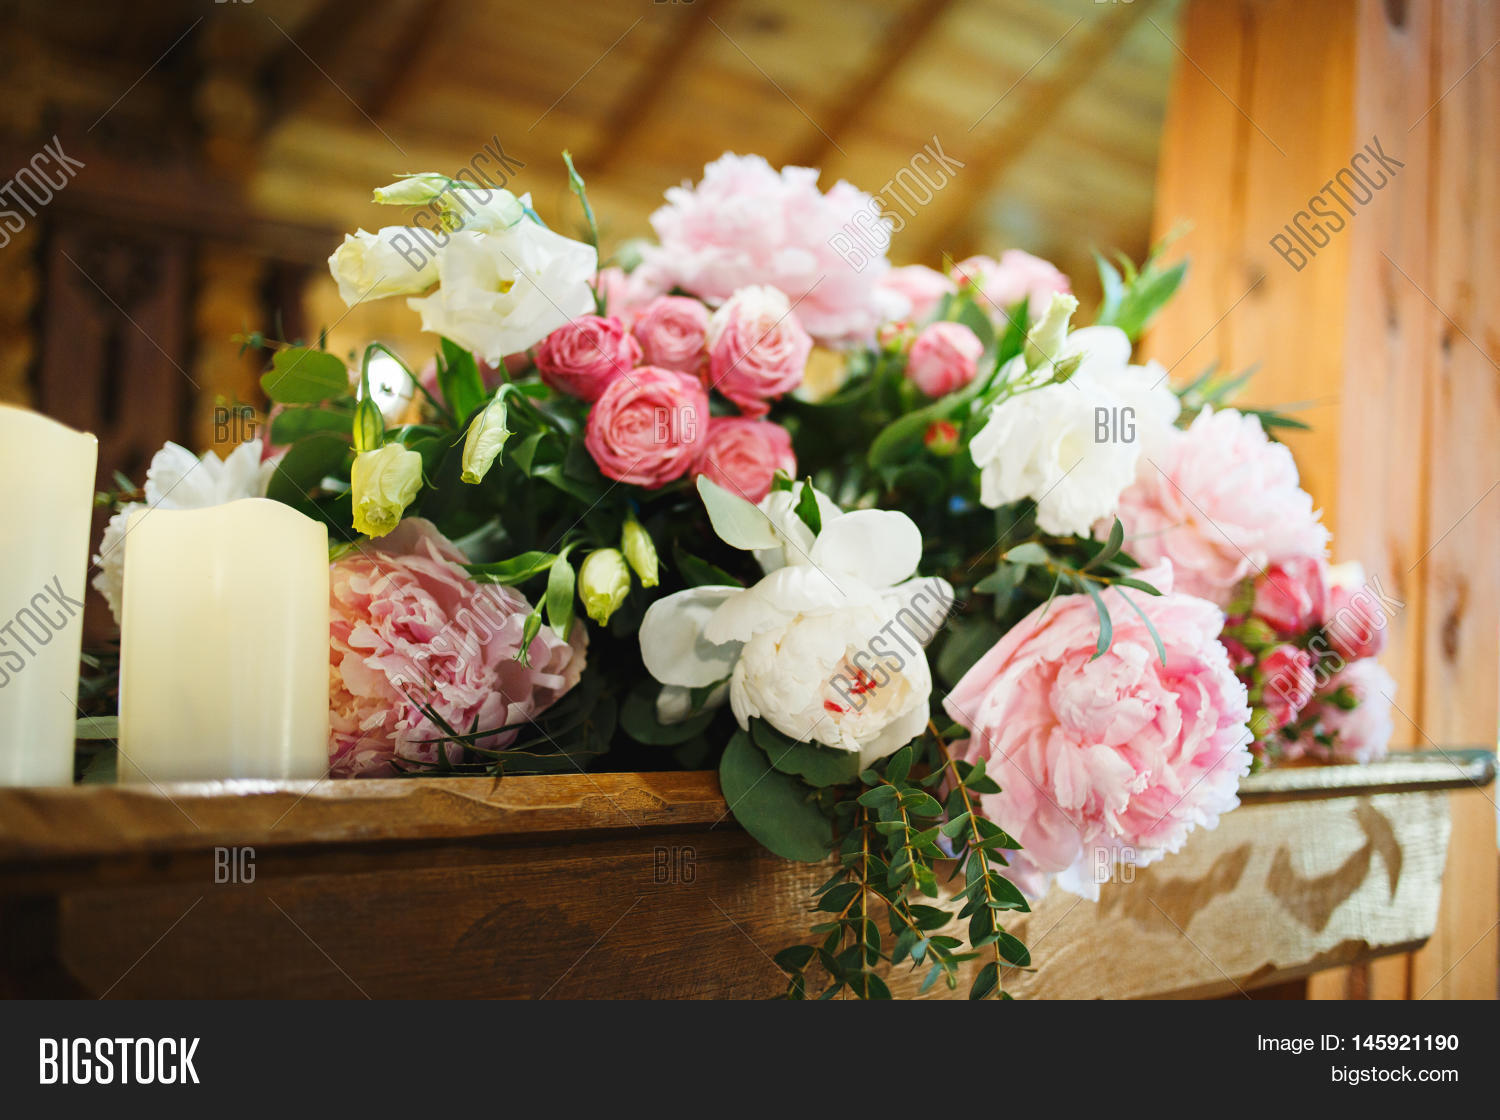 Wedding table decoration pink image photo bigstock for Table 20 personnes